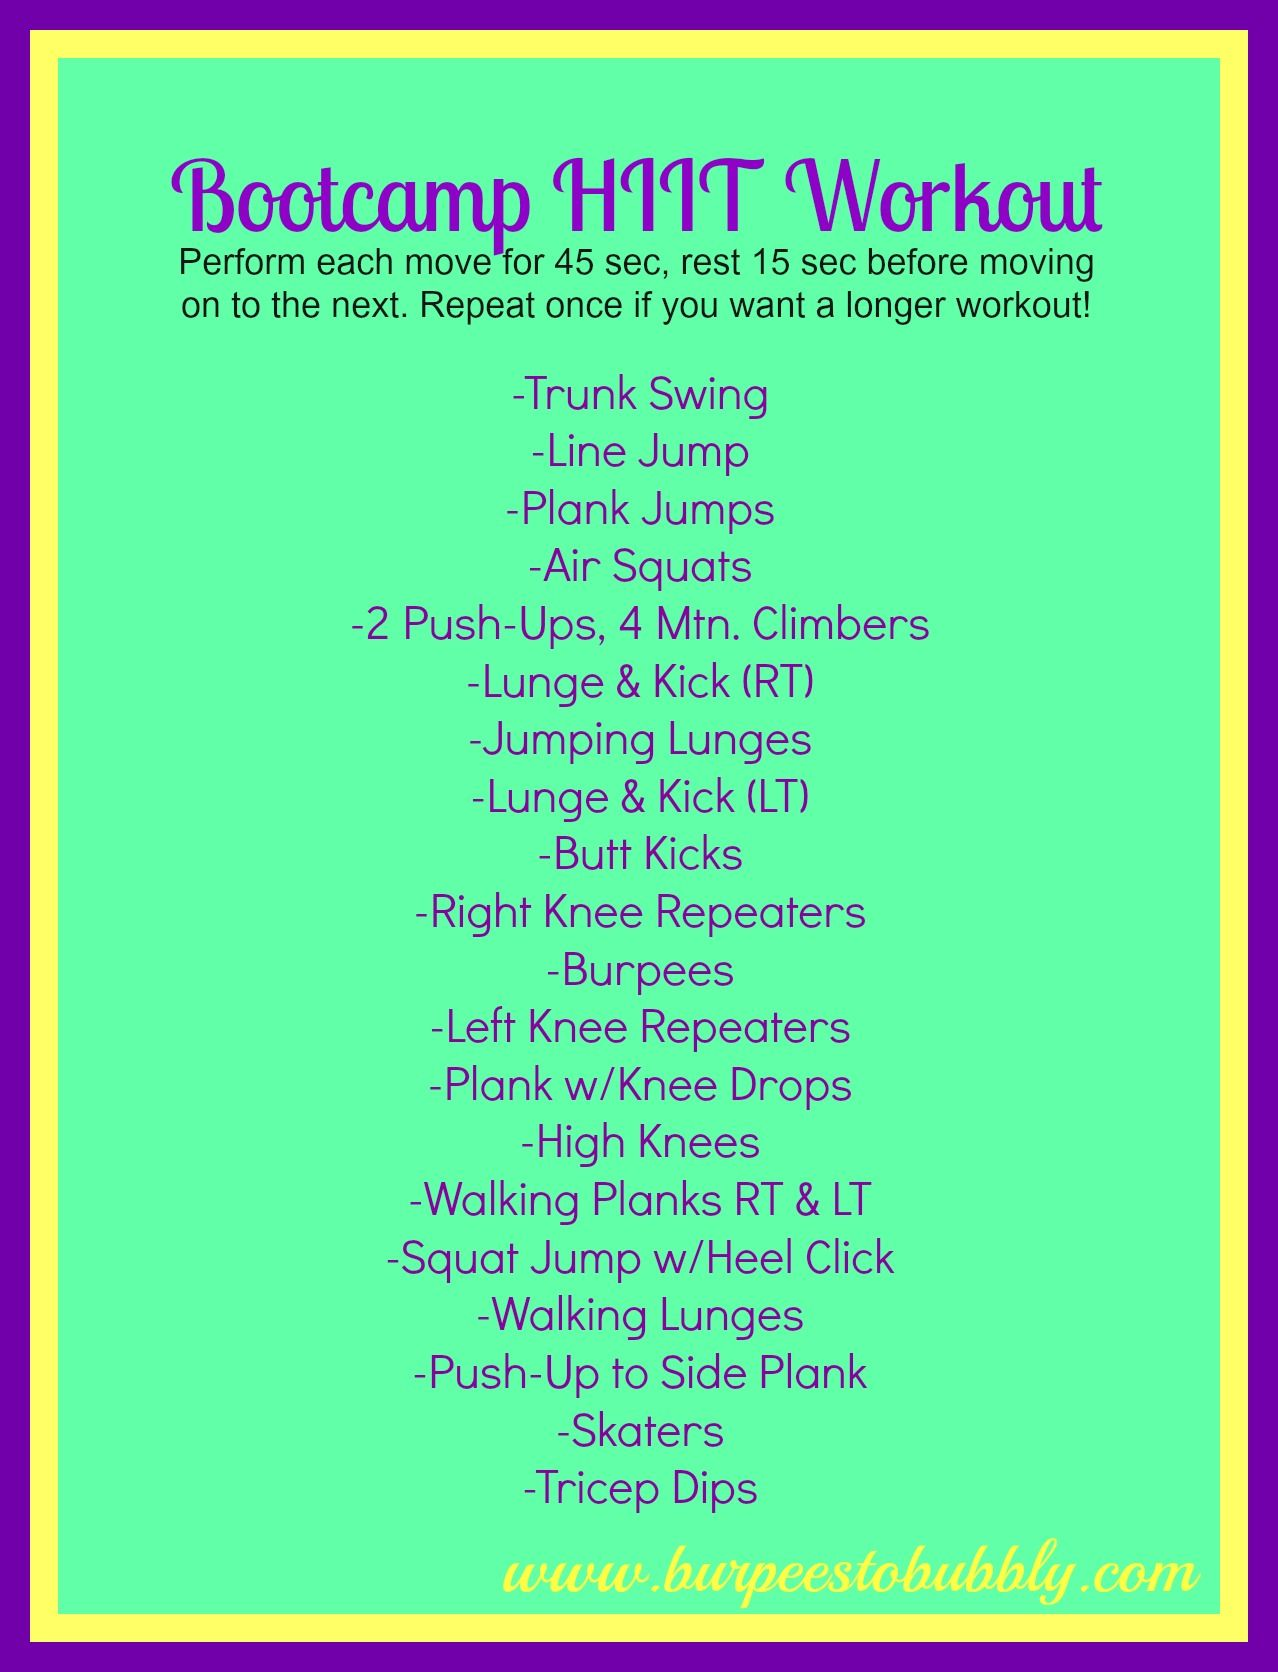 20 minute bootcamp hiit workout | Fitness :) | Pinterest ...